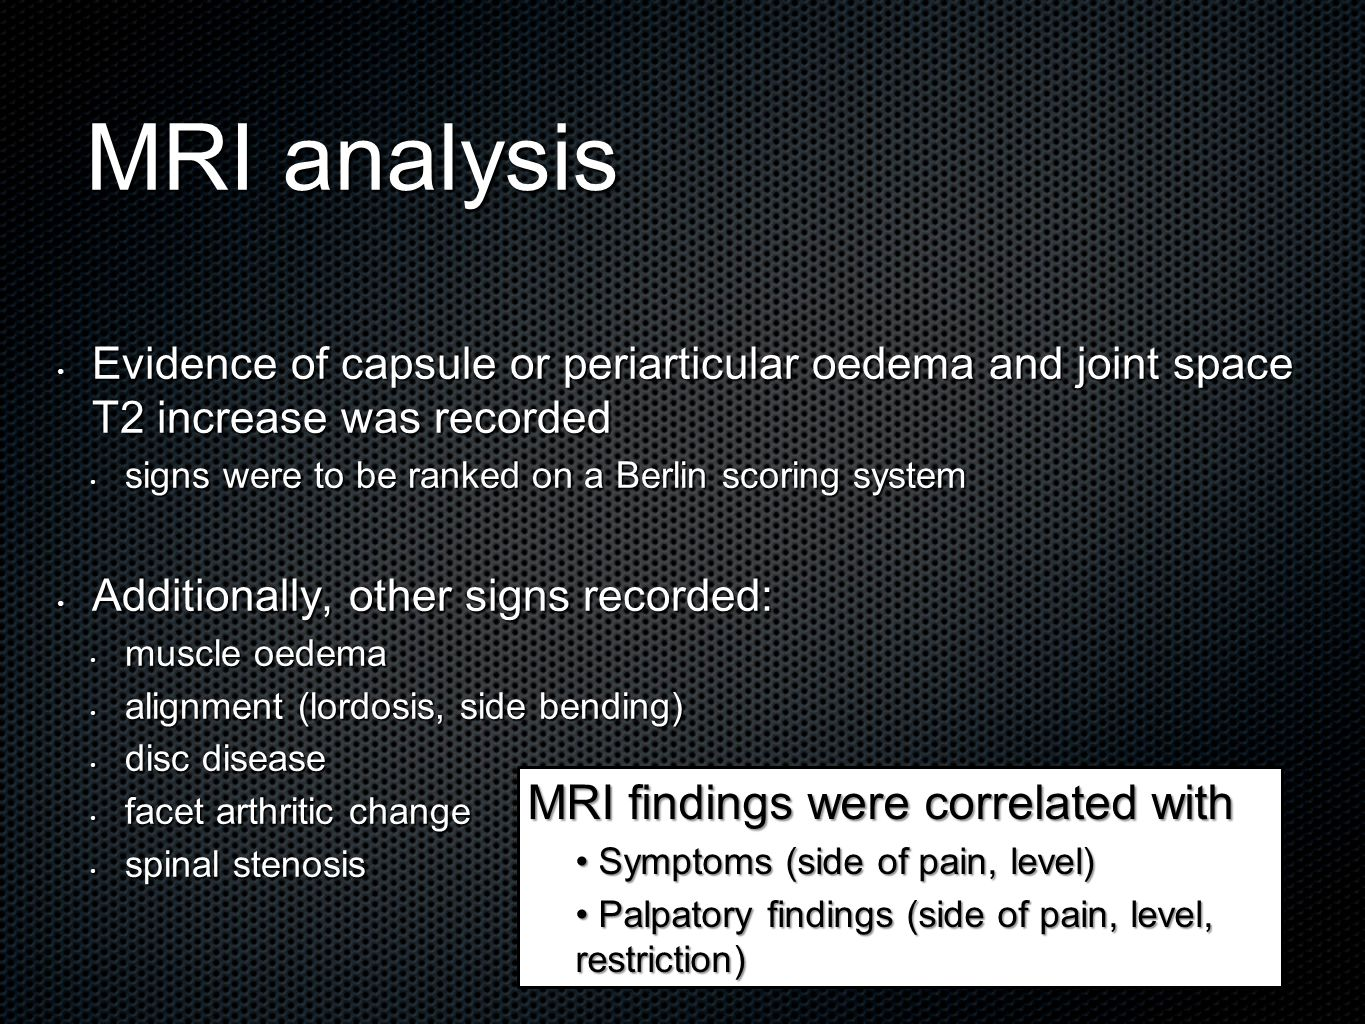 MRI analysis Evidence of capsule or periarticular oedema and joint space T2 increase was recorded Evidence of capsule or periarticular oedema and joint space T2 increase was recorded signs were to be ranked on a Berlin scoring system signs were to be ranked on a Berlin scoring system Additionally, other signs recorded: Additionally, other signs recorded: muscle oedema muscle oedema alignment (lordosis, side bending) alignment (lordosis, side bending) disc disease disc disease facet arthritic change facet arthritic change spinal stenosis spinal stenosis MRI findings were correlated with Symptoms (side of pain, level) Symptoms (side of pain, level) Palpatory findings (side of pain, level, restriction) Palpatory findings (side of pain, level, restriction)